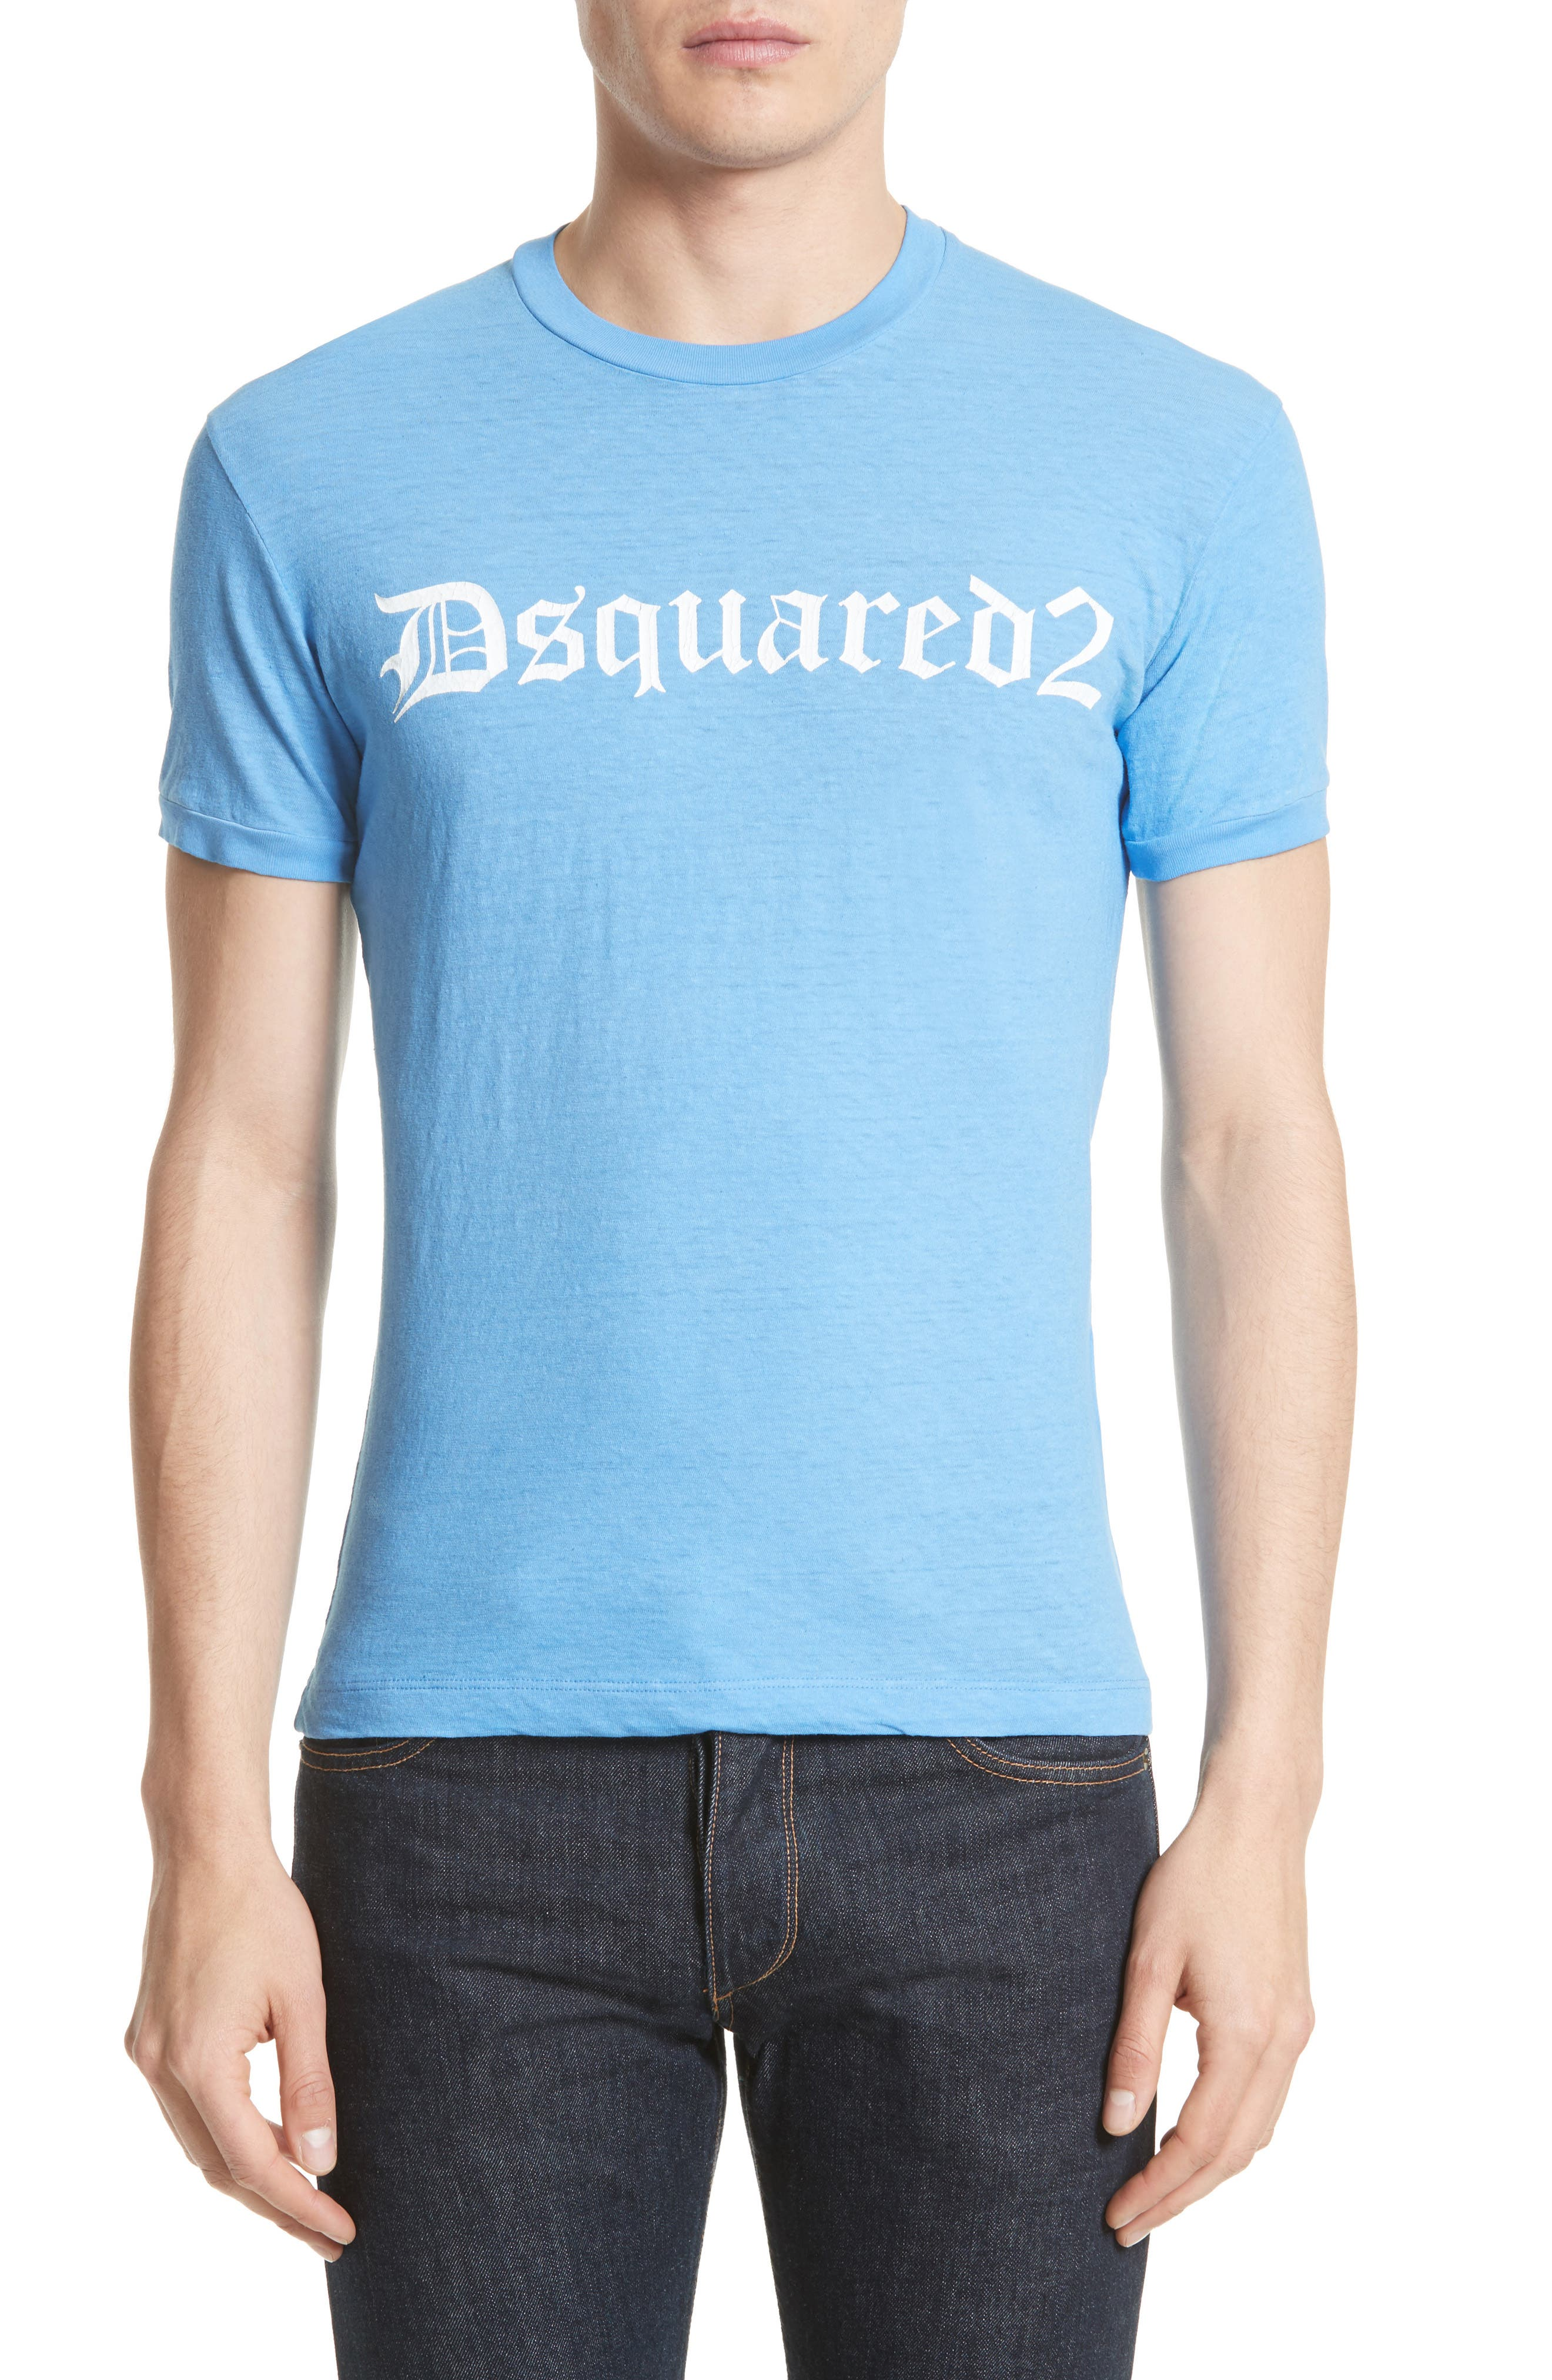 Main Image - Dquared2 Cotton T-Shirt